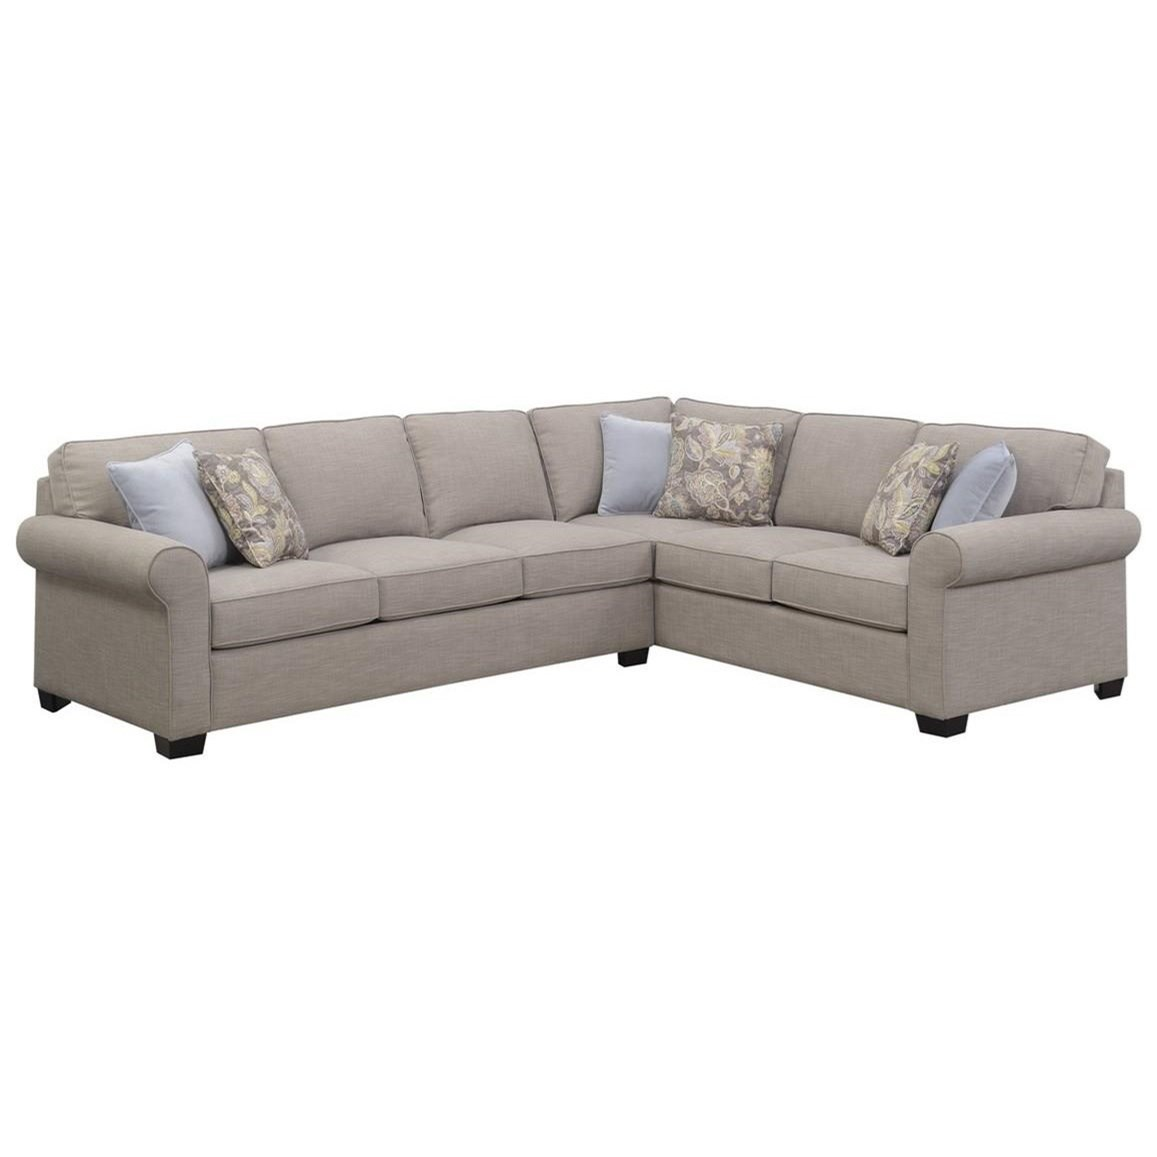 Angelica Sectional Queen Sleeper Sofa by Emerald at Northeast Factory Direct